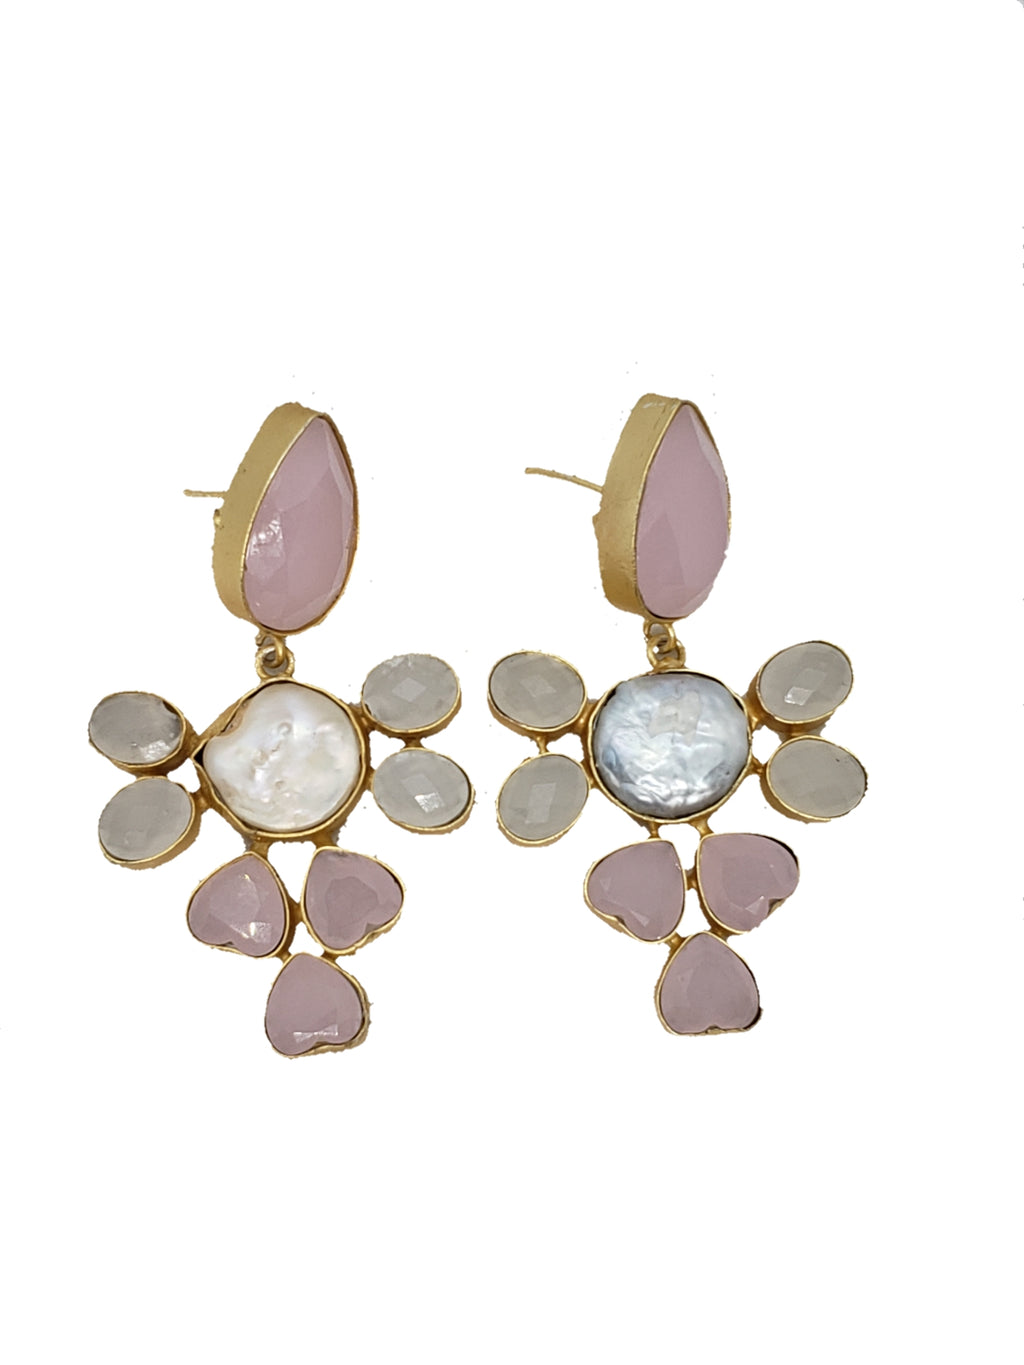 Rose Quartz and Mother of Pearl Drop Earrings - The Bauble Shop